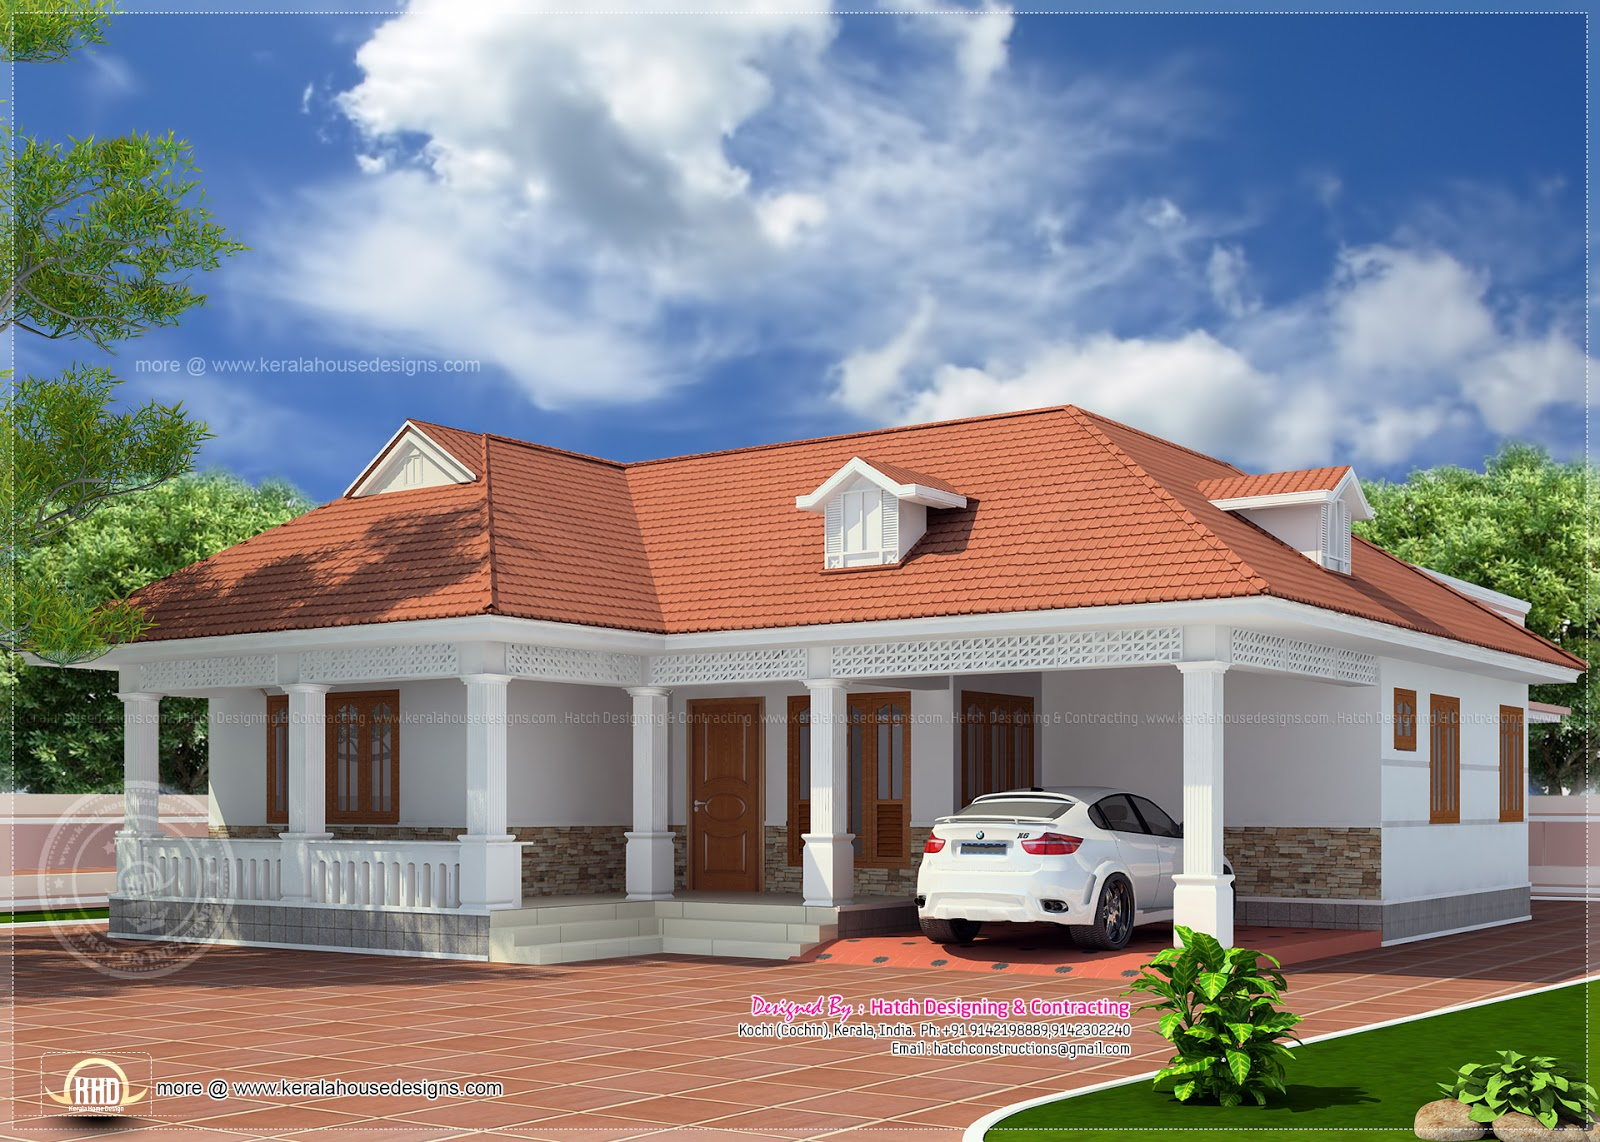 1850 kerala style home elevation kerala home for Housing plans kerala